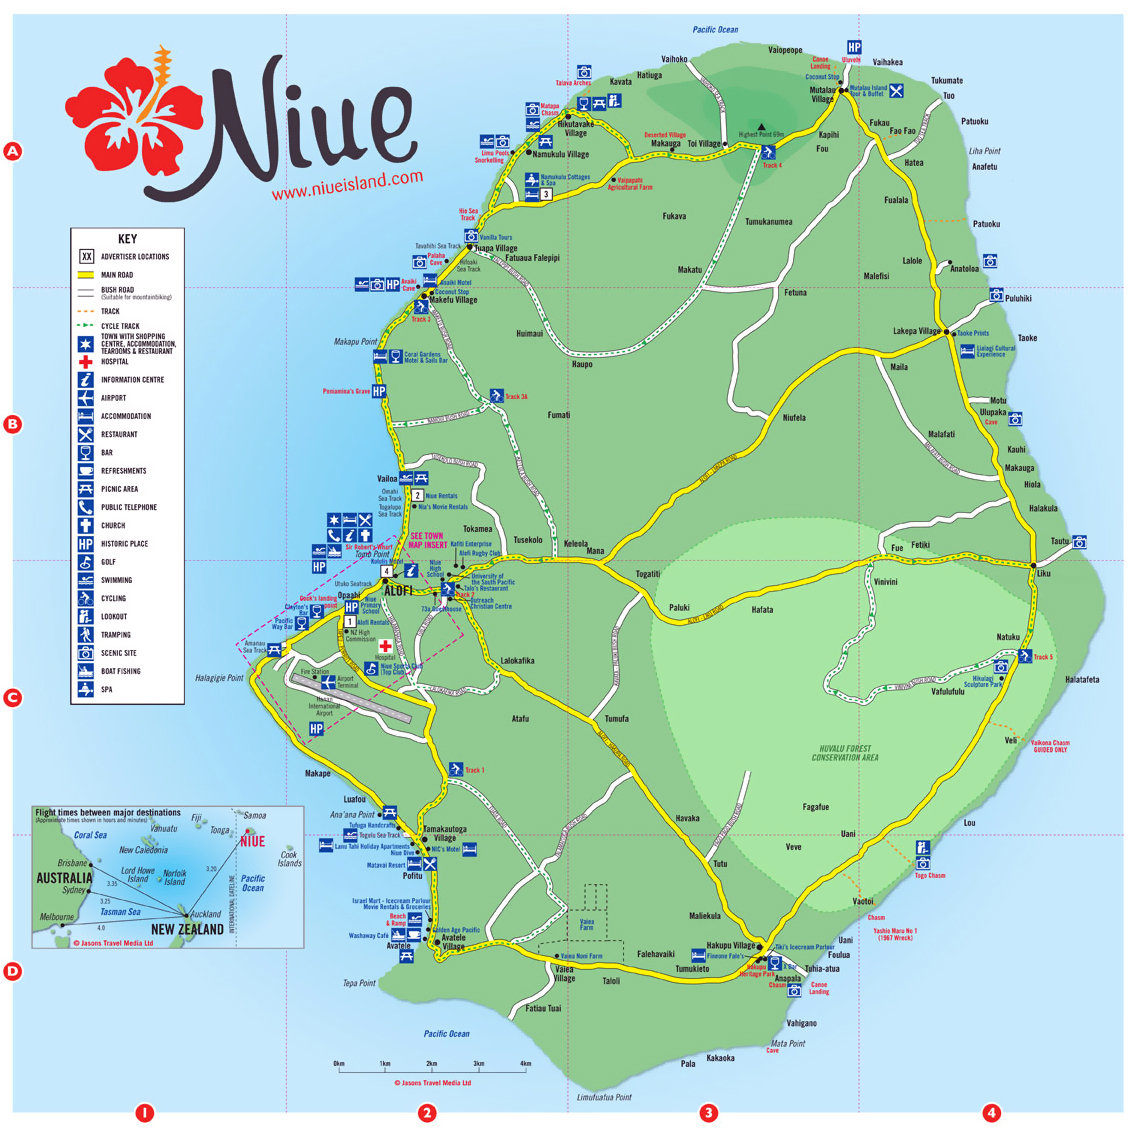 Travel Map Of Niue Niue Travel Map Vidianicom Maps Of All - Niue map